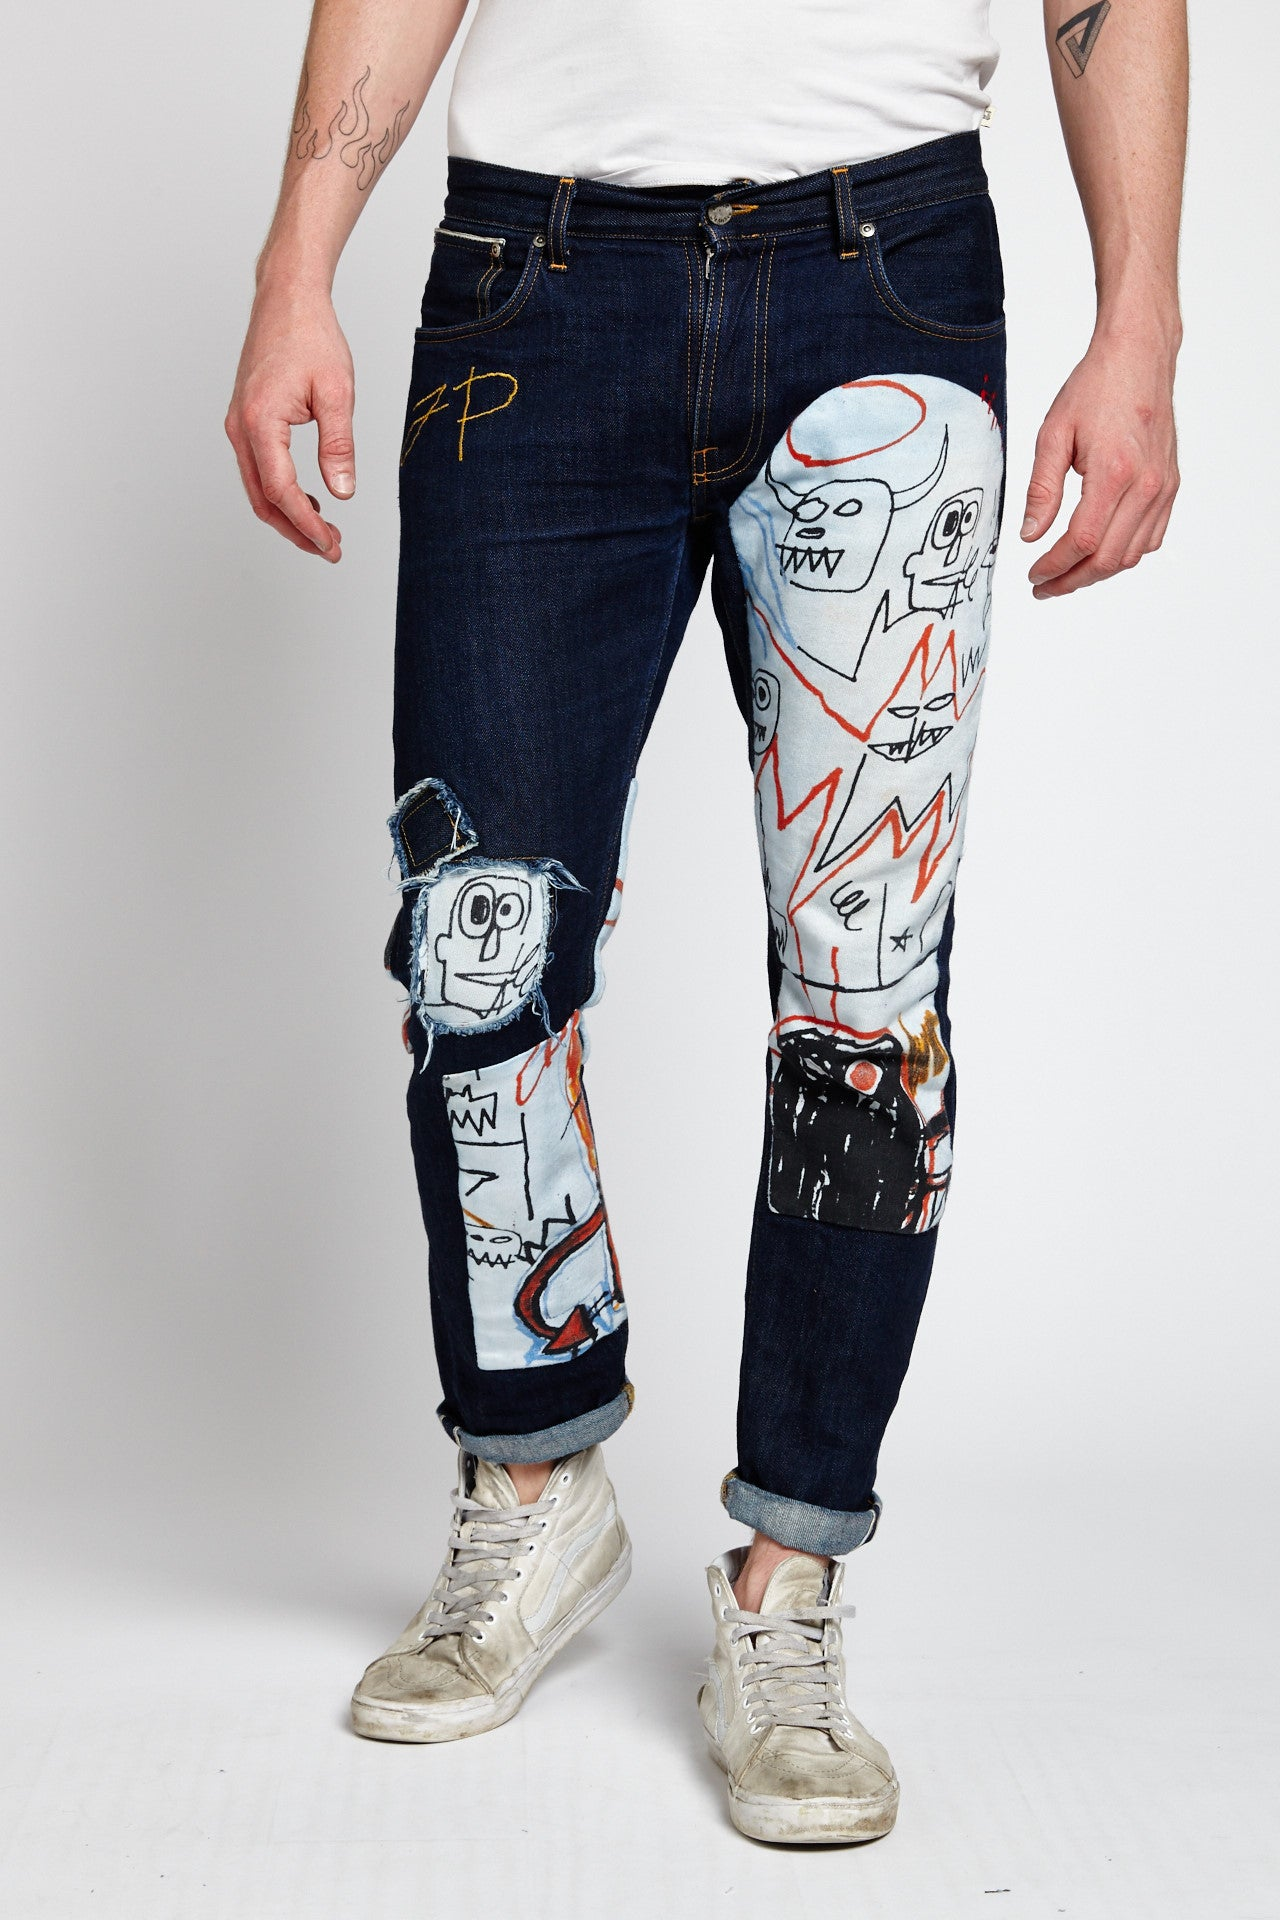 RECONSTRUCTED BASQUIAT DENIM JEANS IN DARK BLUE  (Made To Order Only)